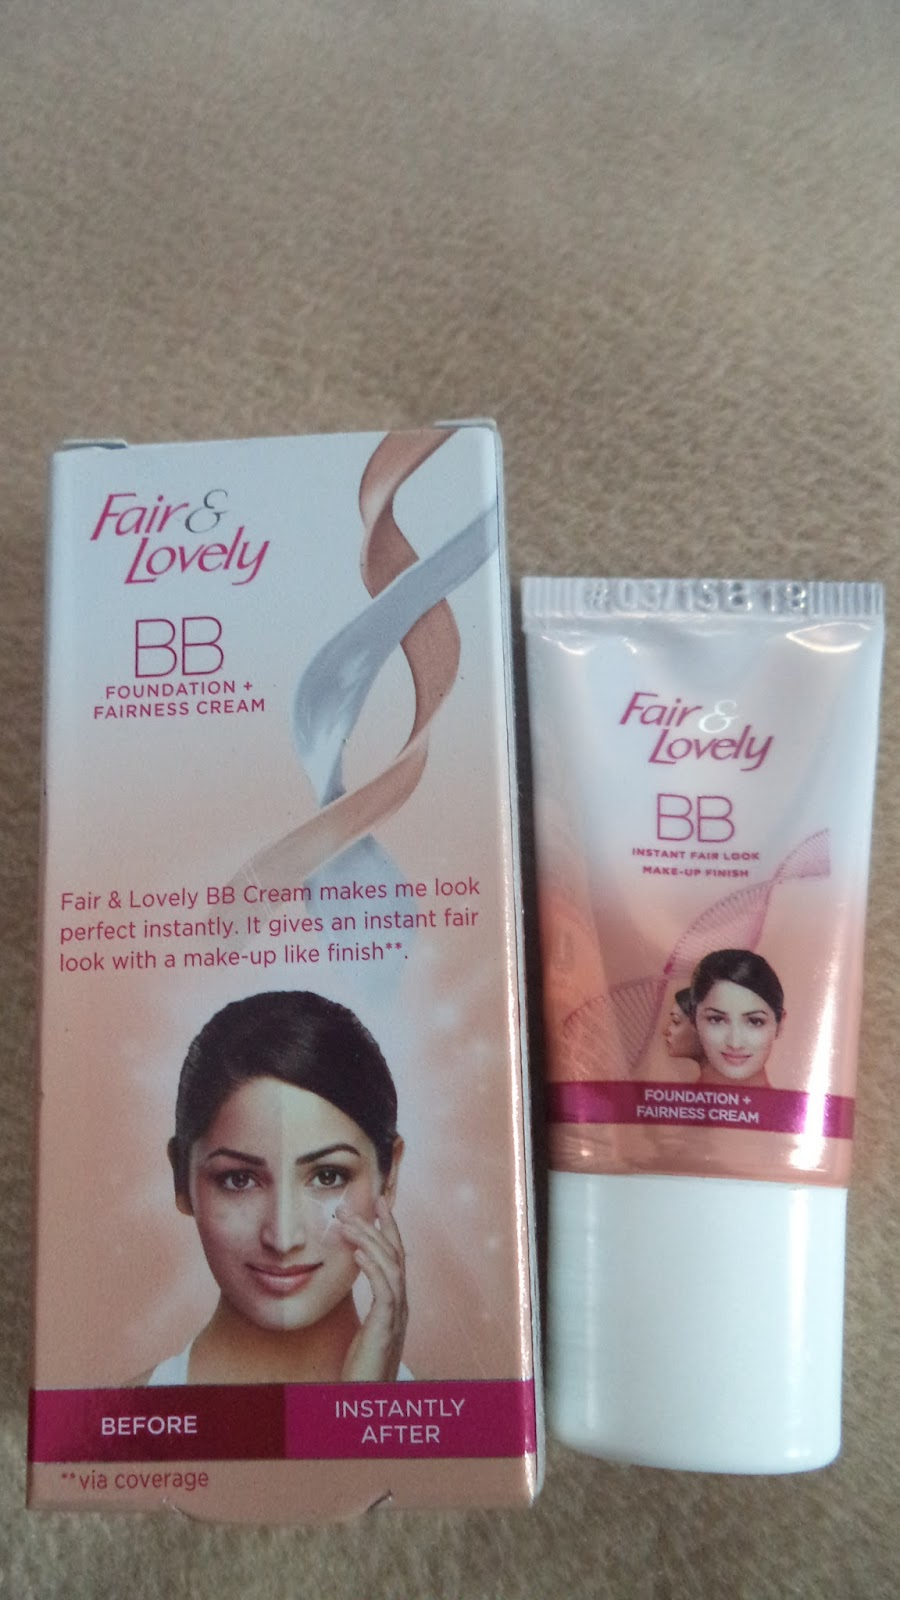 BEAUTYINFO: REVIEW ON THE FAIR AND LOVELY BB CREAM